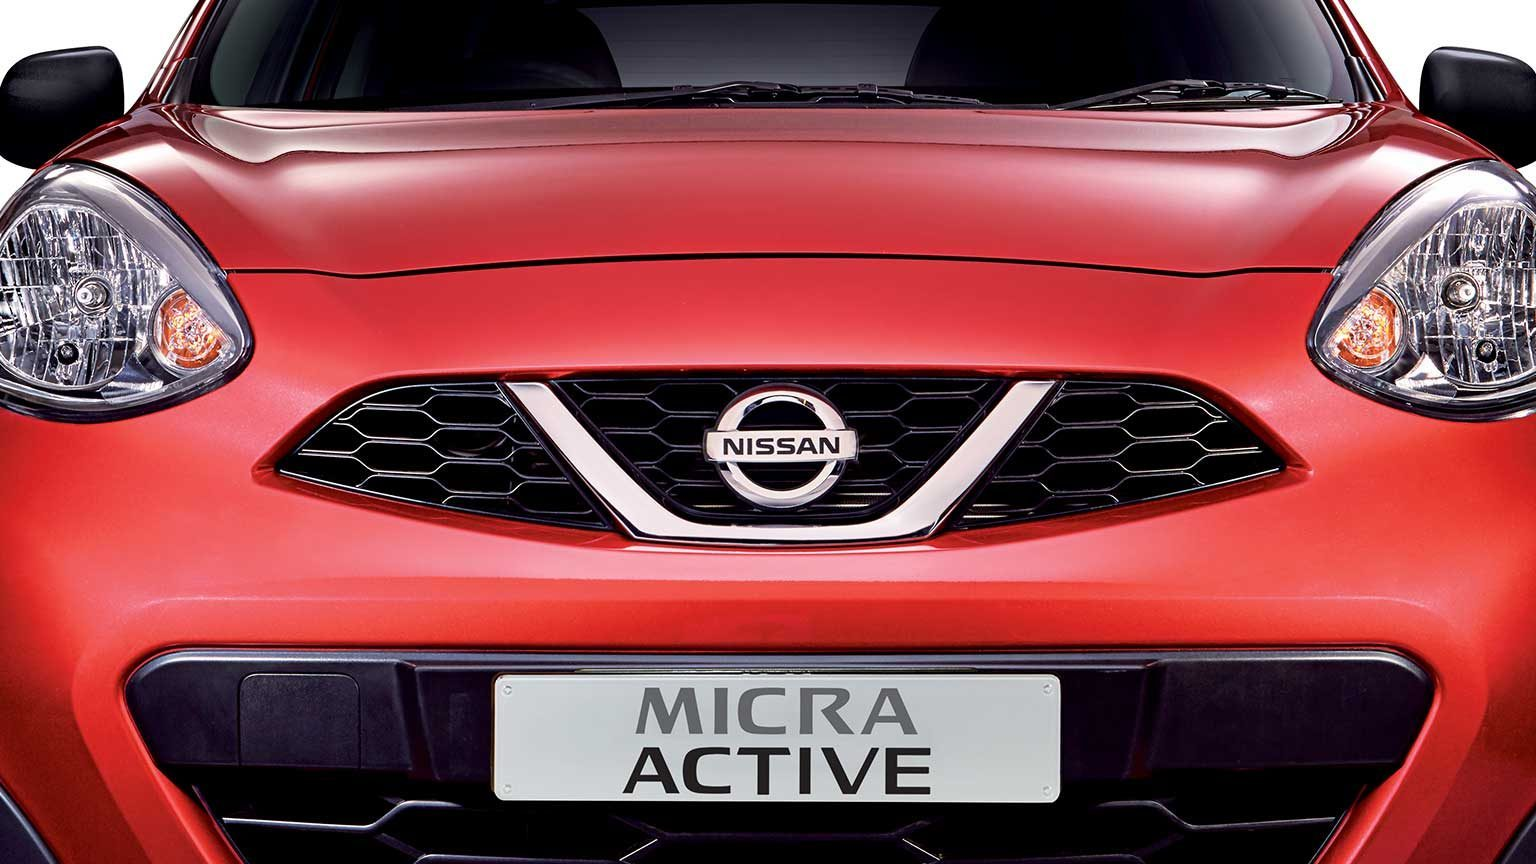 Micra Active Grille